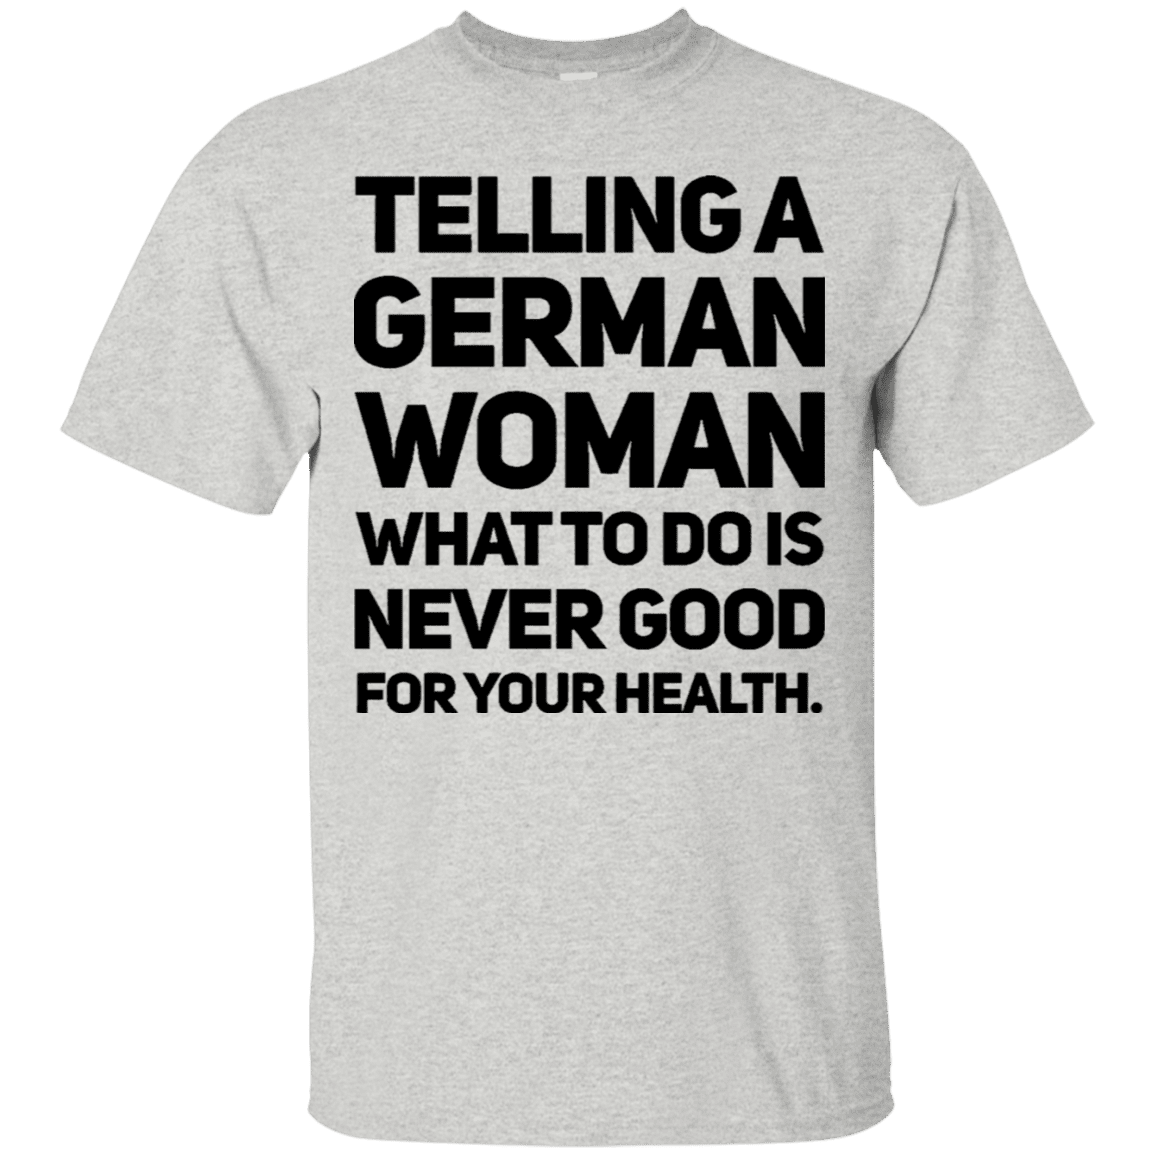 c1ef2ca0aba Telling A German Woman What To Do Is Never Good For Your Health T-Shirt